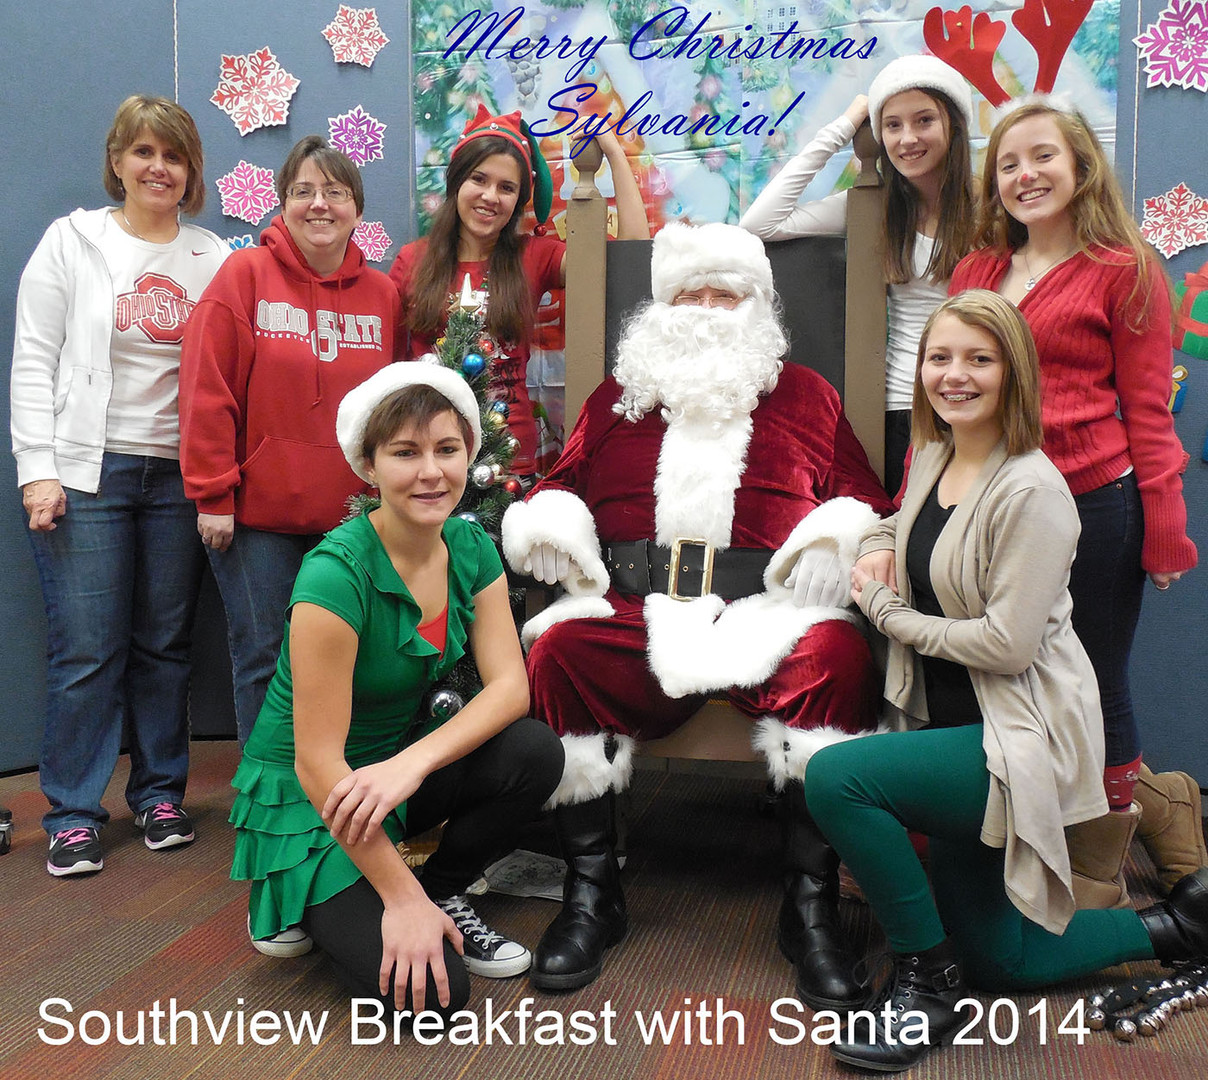 Southview breakfast with Santa.jpg